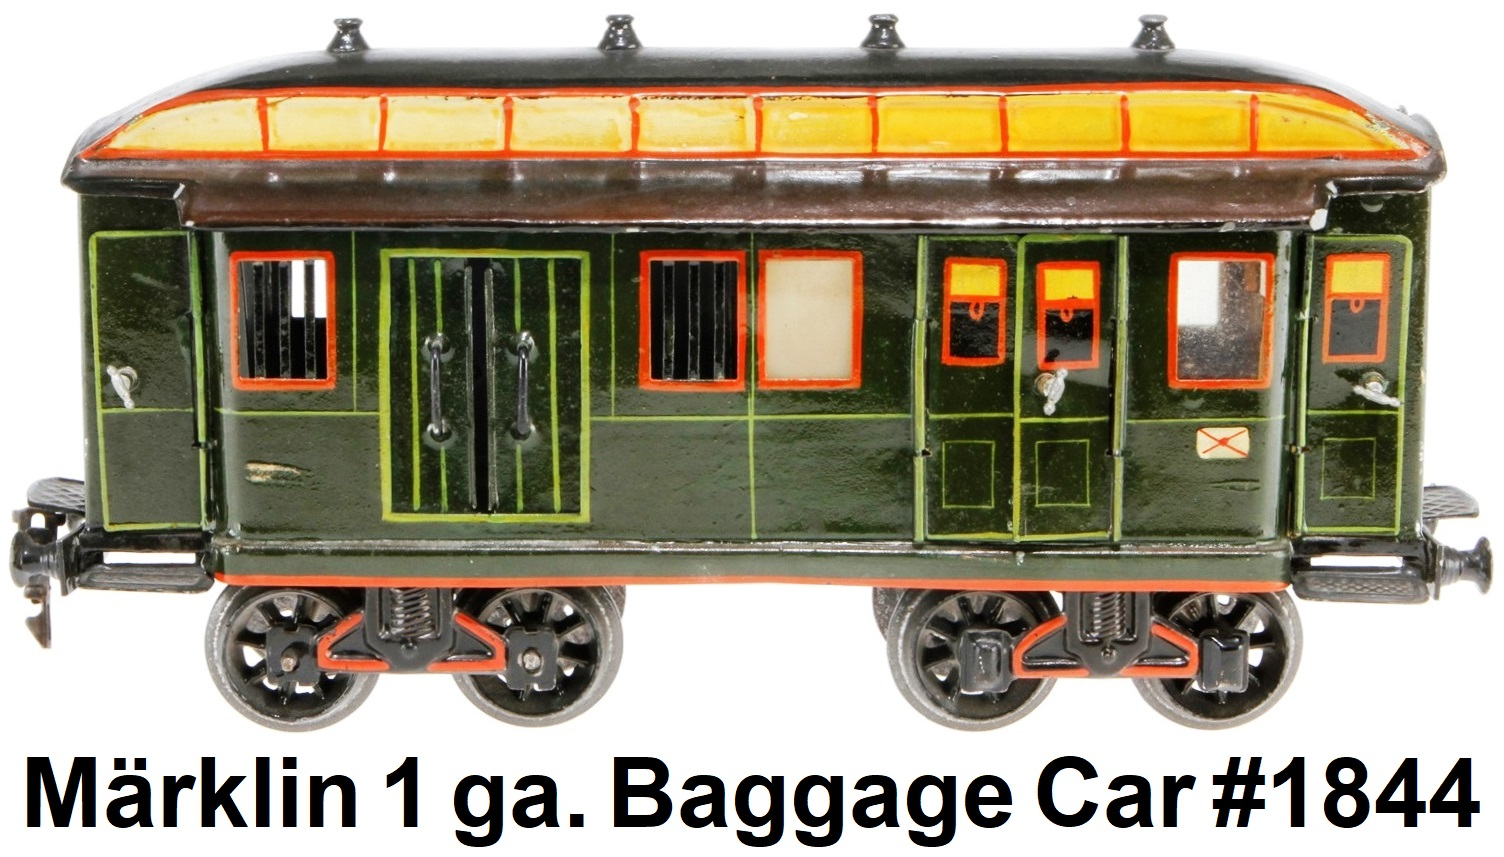 Märklin #1844 mail & luggage van circa early 1900's - hand decorated, tin soldered, with opening doors and hinged roof